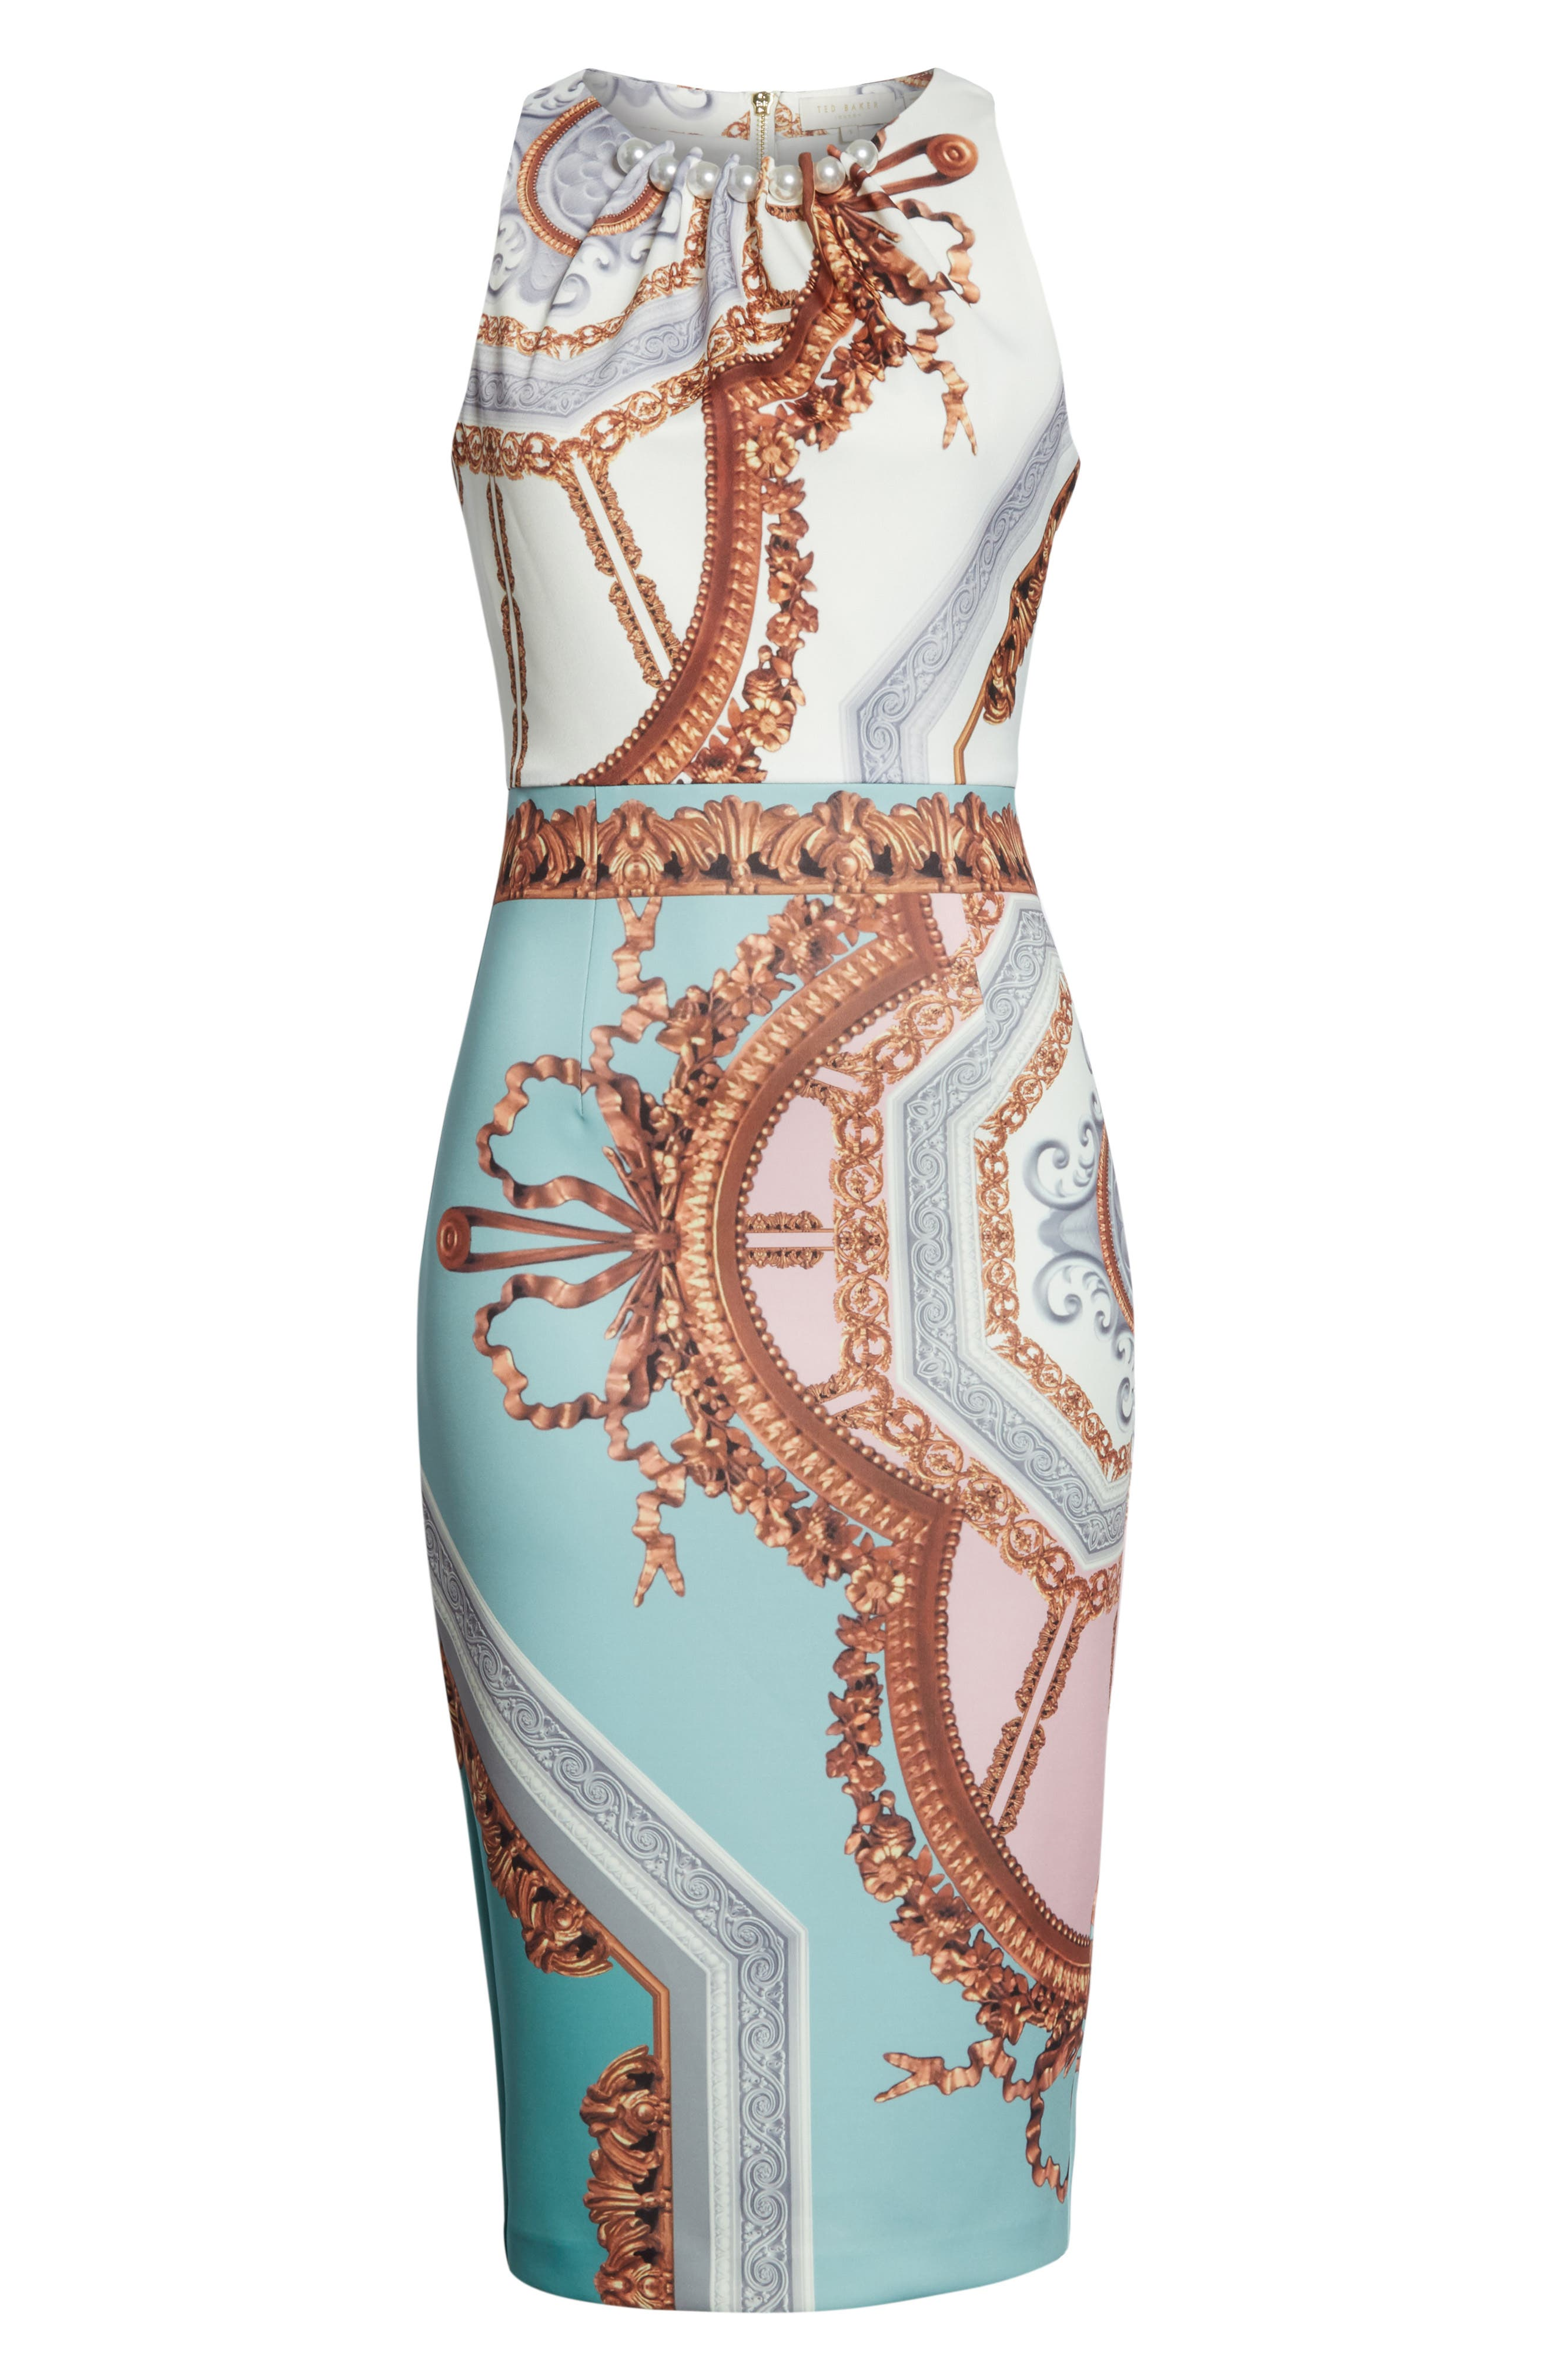 Orlla Embellished Midi Dress,                             Alternate thumbnail 6, color,                             Teal